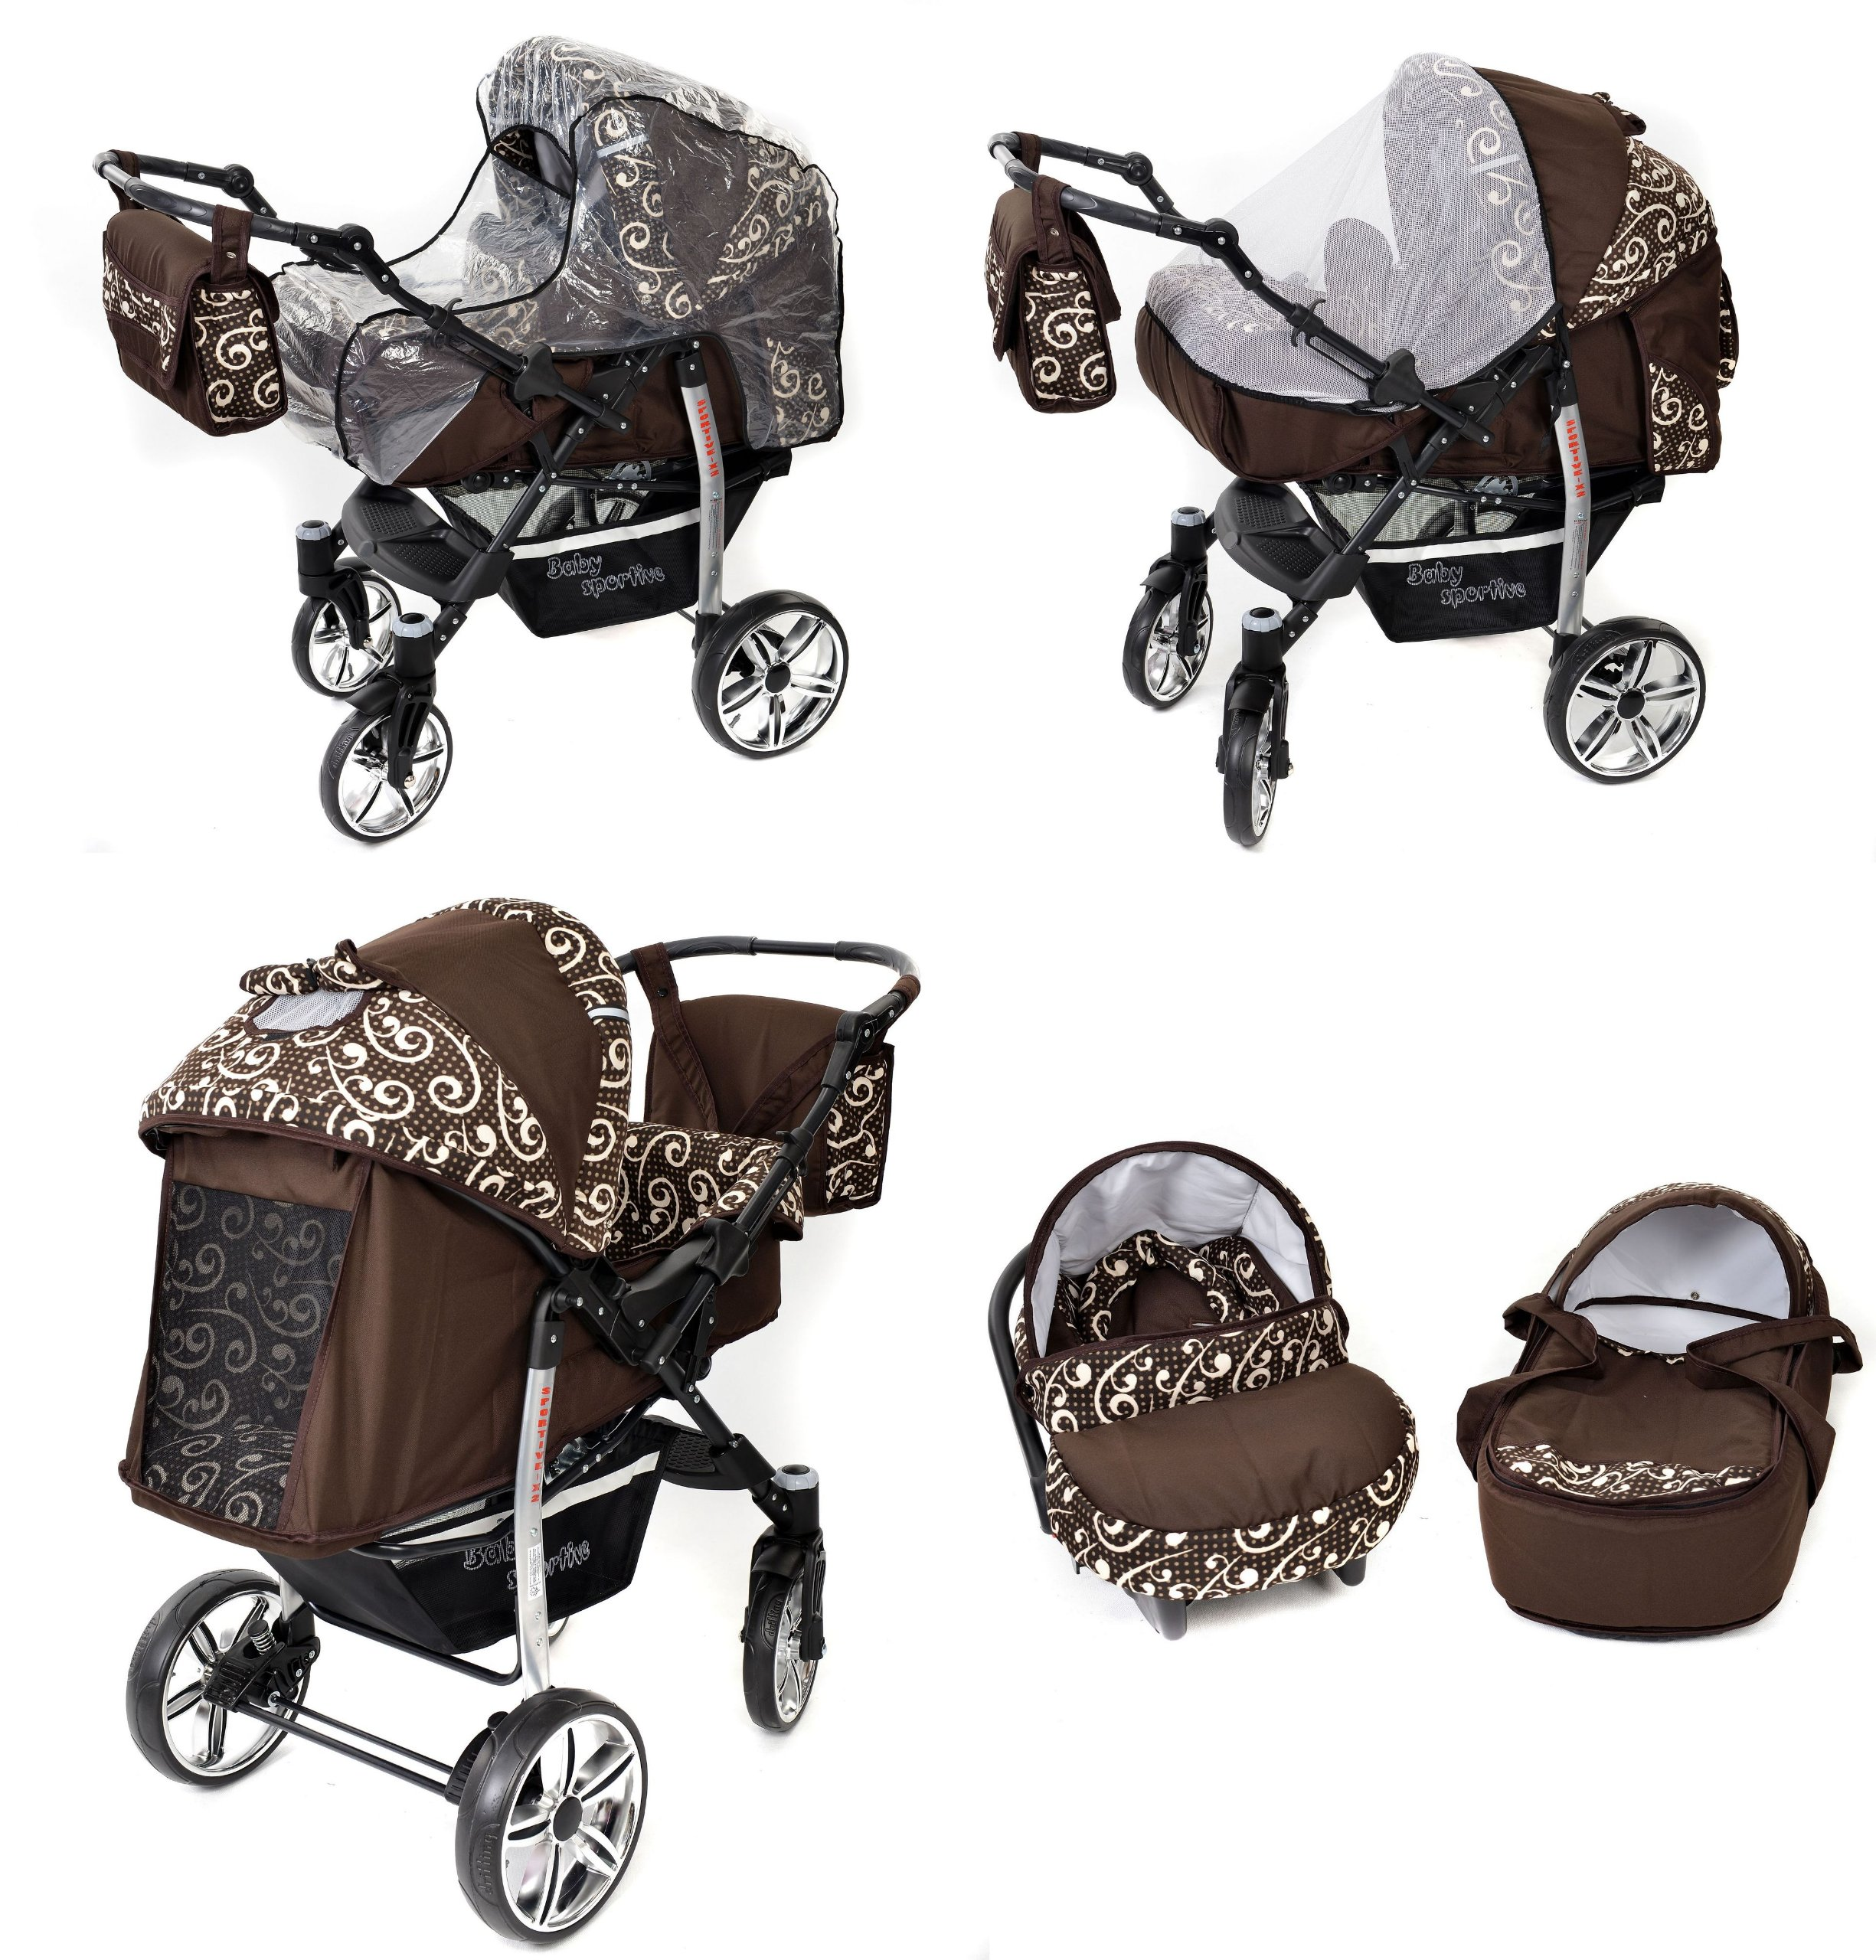 Sportive X2, 3-in-1 Travel System incl. Baby Pram with Swivel Wheels, Car Seat, Pushchair & Accessories (3-in-1 Travel System, Brown & Wawy Lines)  3 in 1 Travel System All in One Set - Pram, Car Carrier Seat and Sport Buggy + Accessories: carrier bag, rain protection, mosquito net, changing mat, removable bottle holder and removable tray for your child's bits and pieces Suitable from birth, Easy Quick Folding System; Large storage basket; Turnable handle bar that allows to face or rear the drive direction; Quick release rear wheels for easy cleaning after muddy walks Front lockable 360o swivel wheels for manoeuvrability , Small sized when folded, fits into many small car trunks, Carry-cot with a removable hood, Reflective elements for better visibility 7